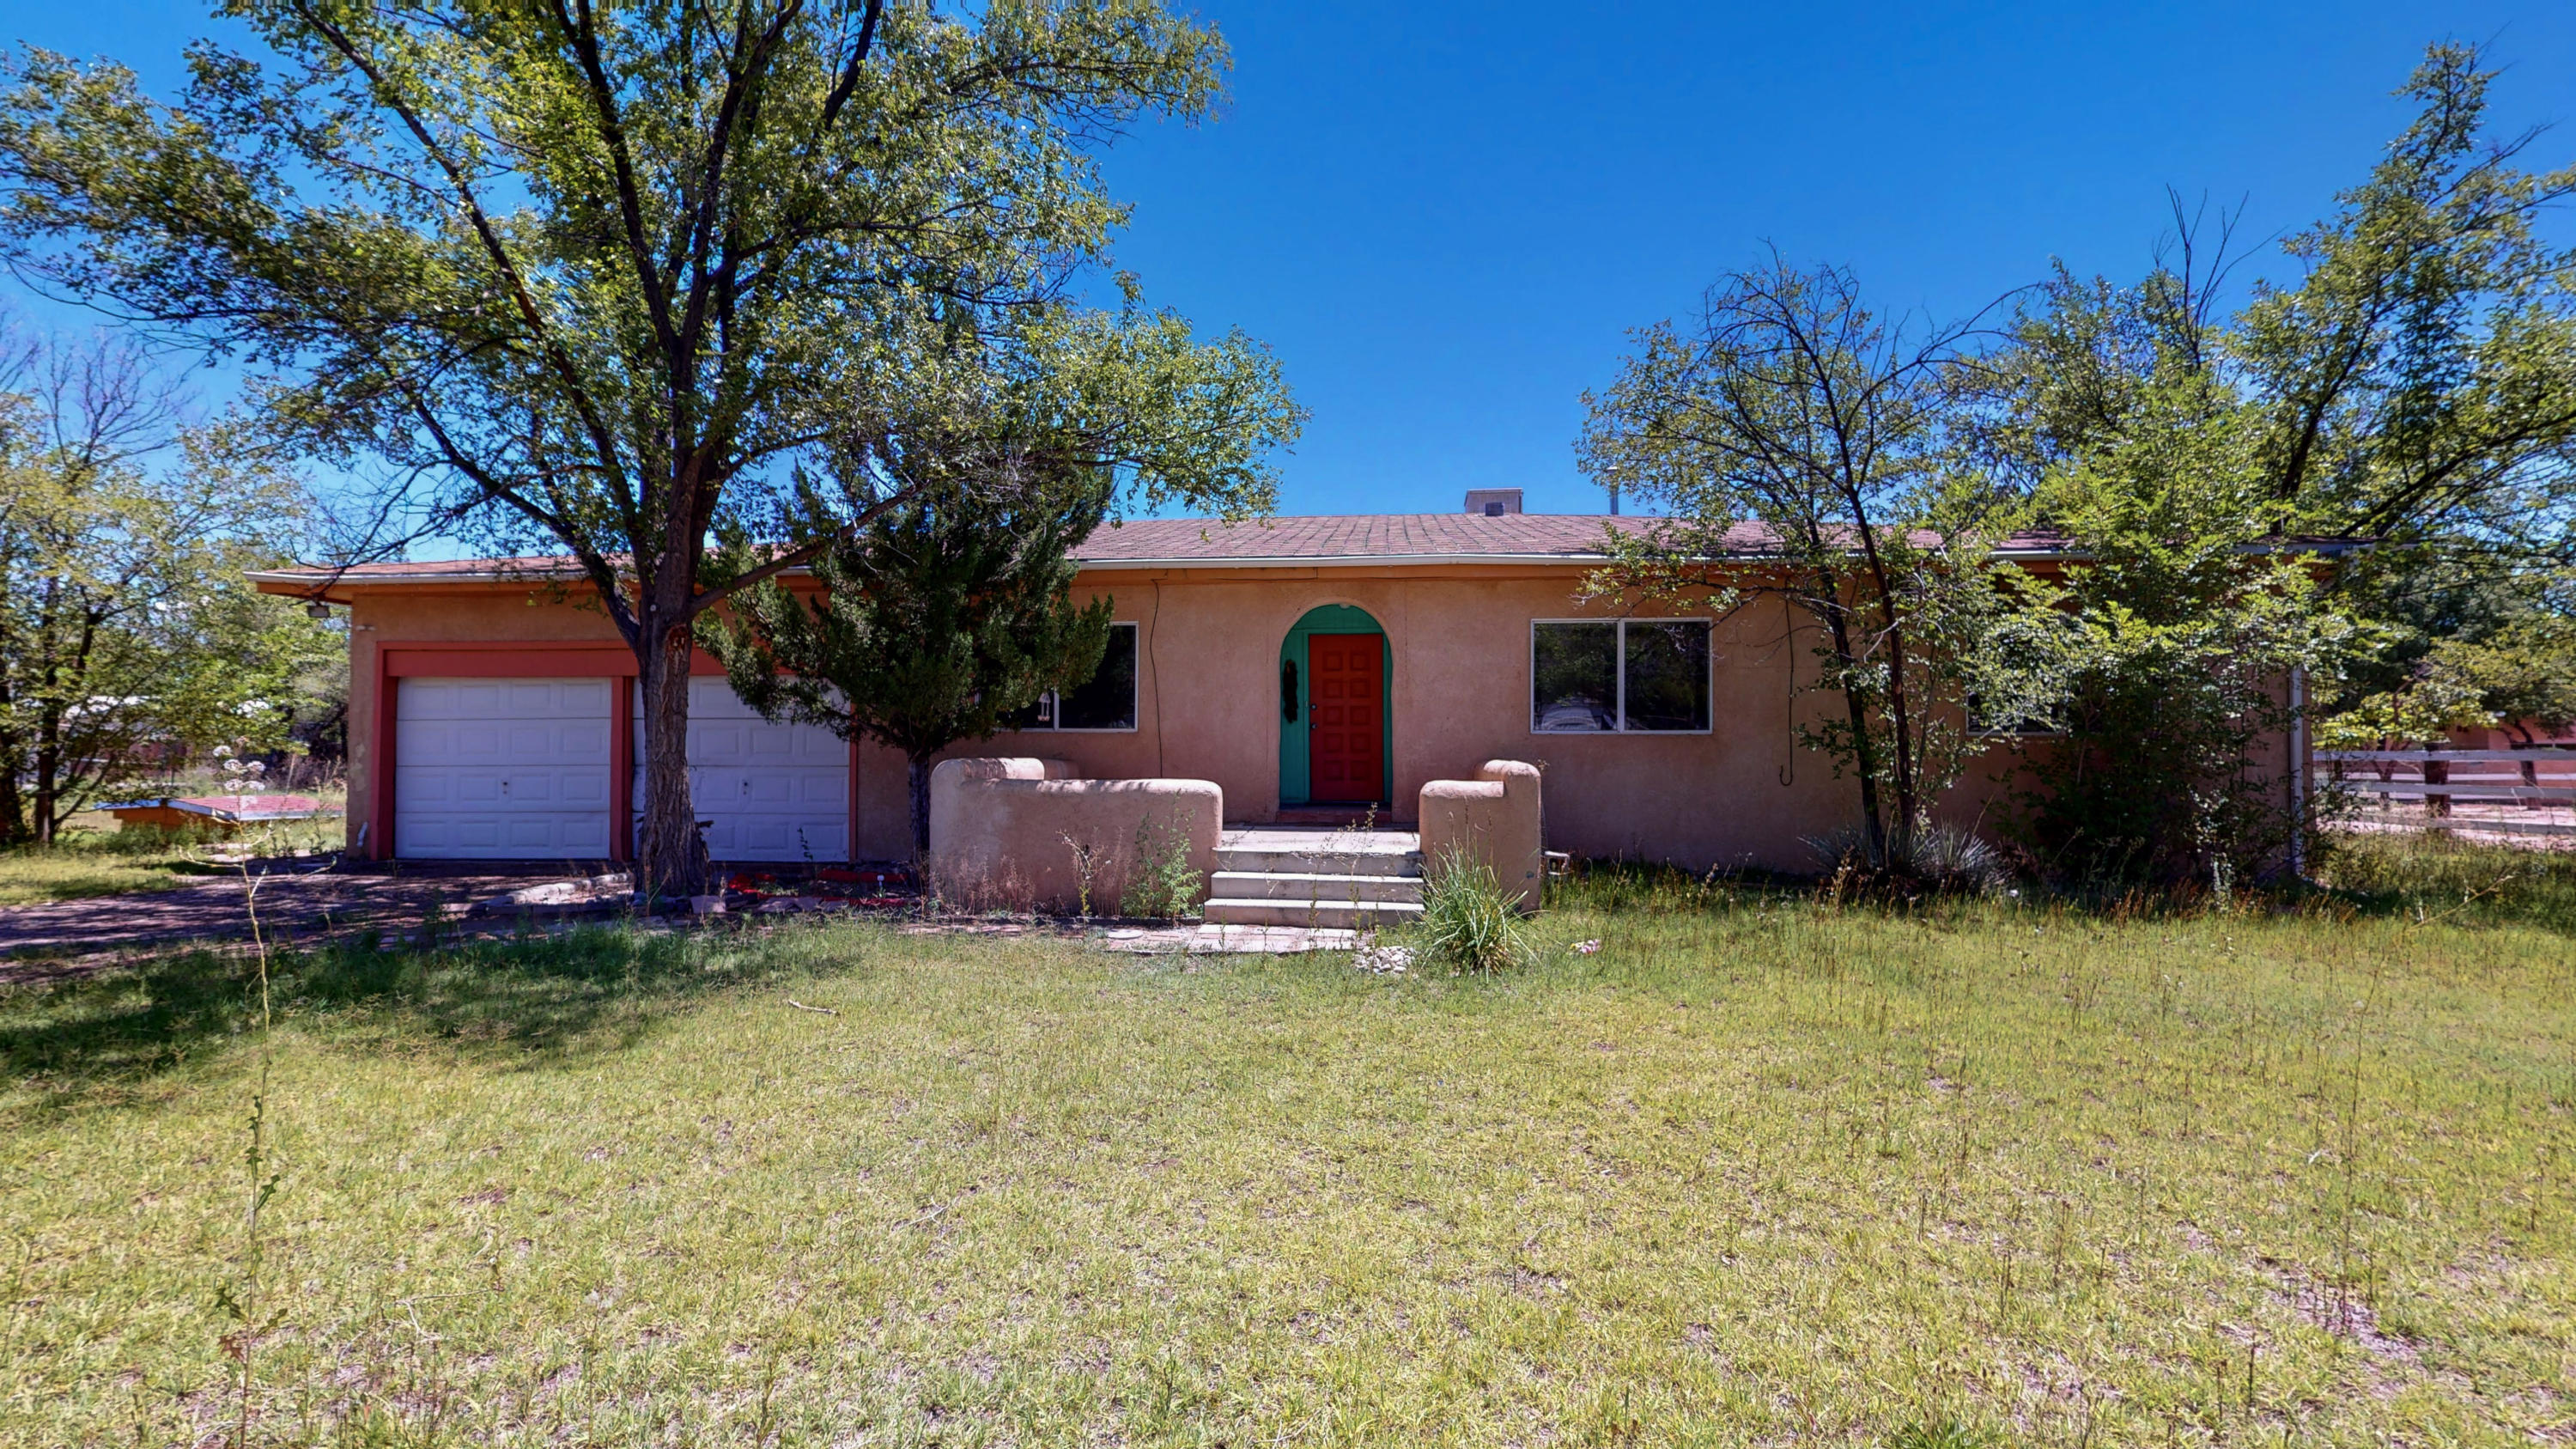 This great corner-lot property is one of a kind!  Spacious rooms, 2 living areas, fireplace and lots of New Mexican accents (wooden vigas, Southwestern color scheme).Almost one-acre of land!  This home needs a little TLC, but has tons of potential!